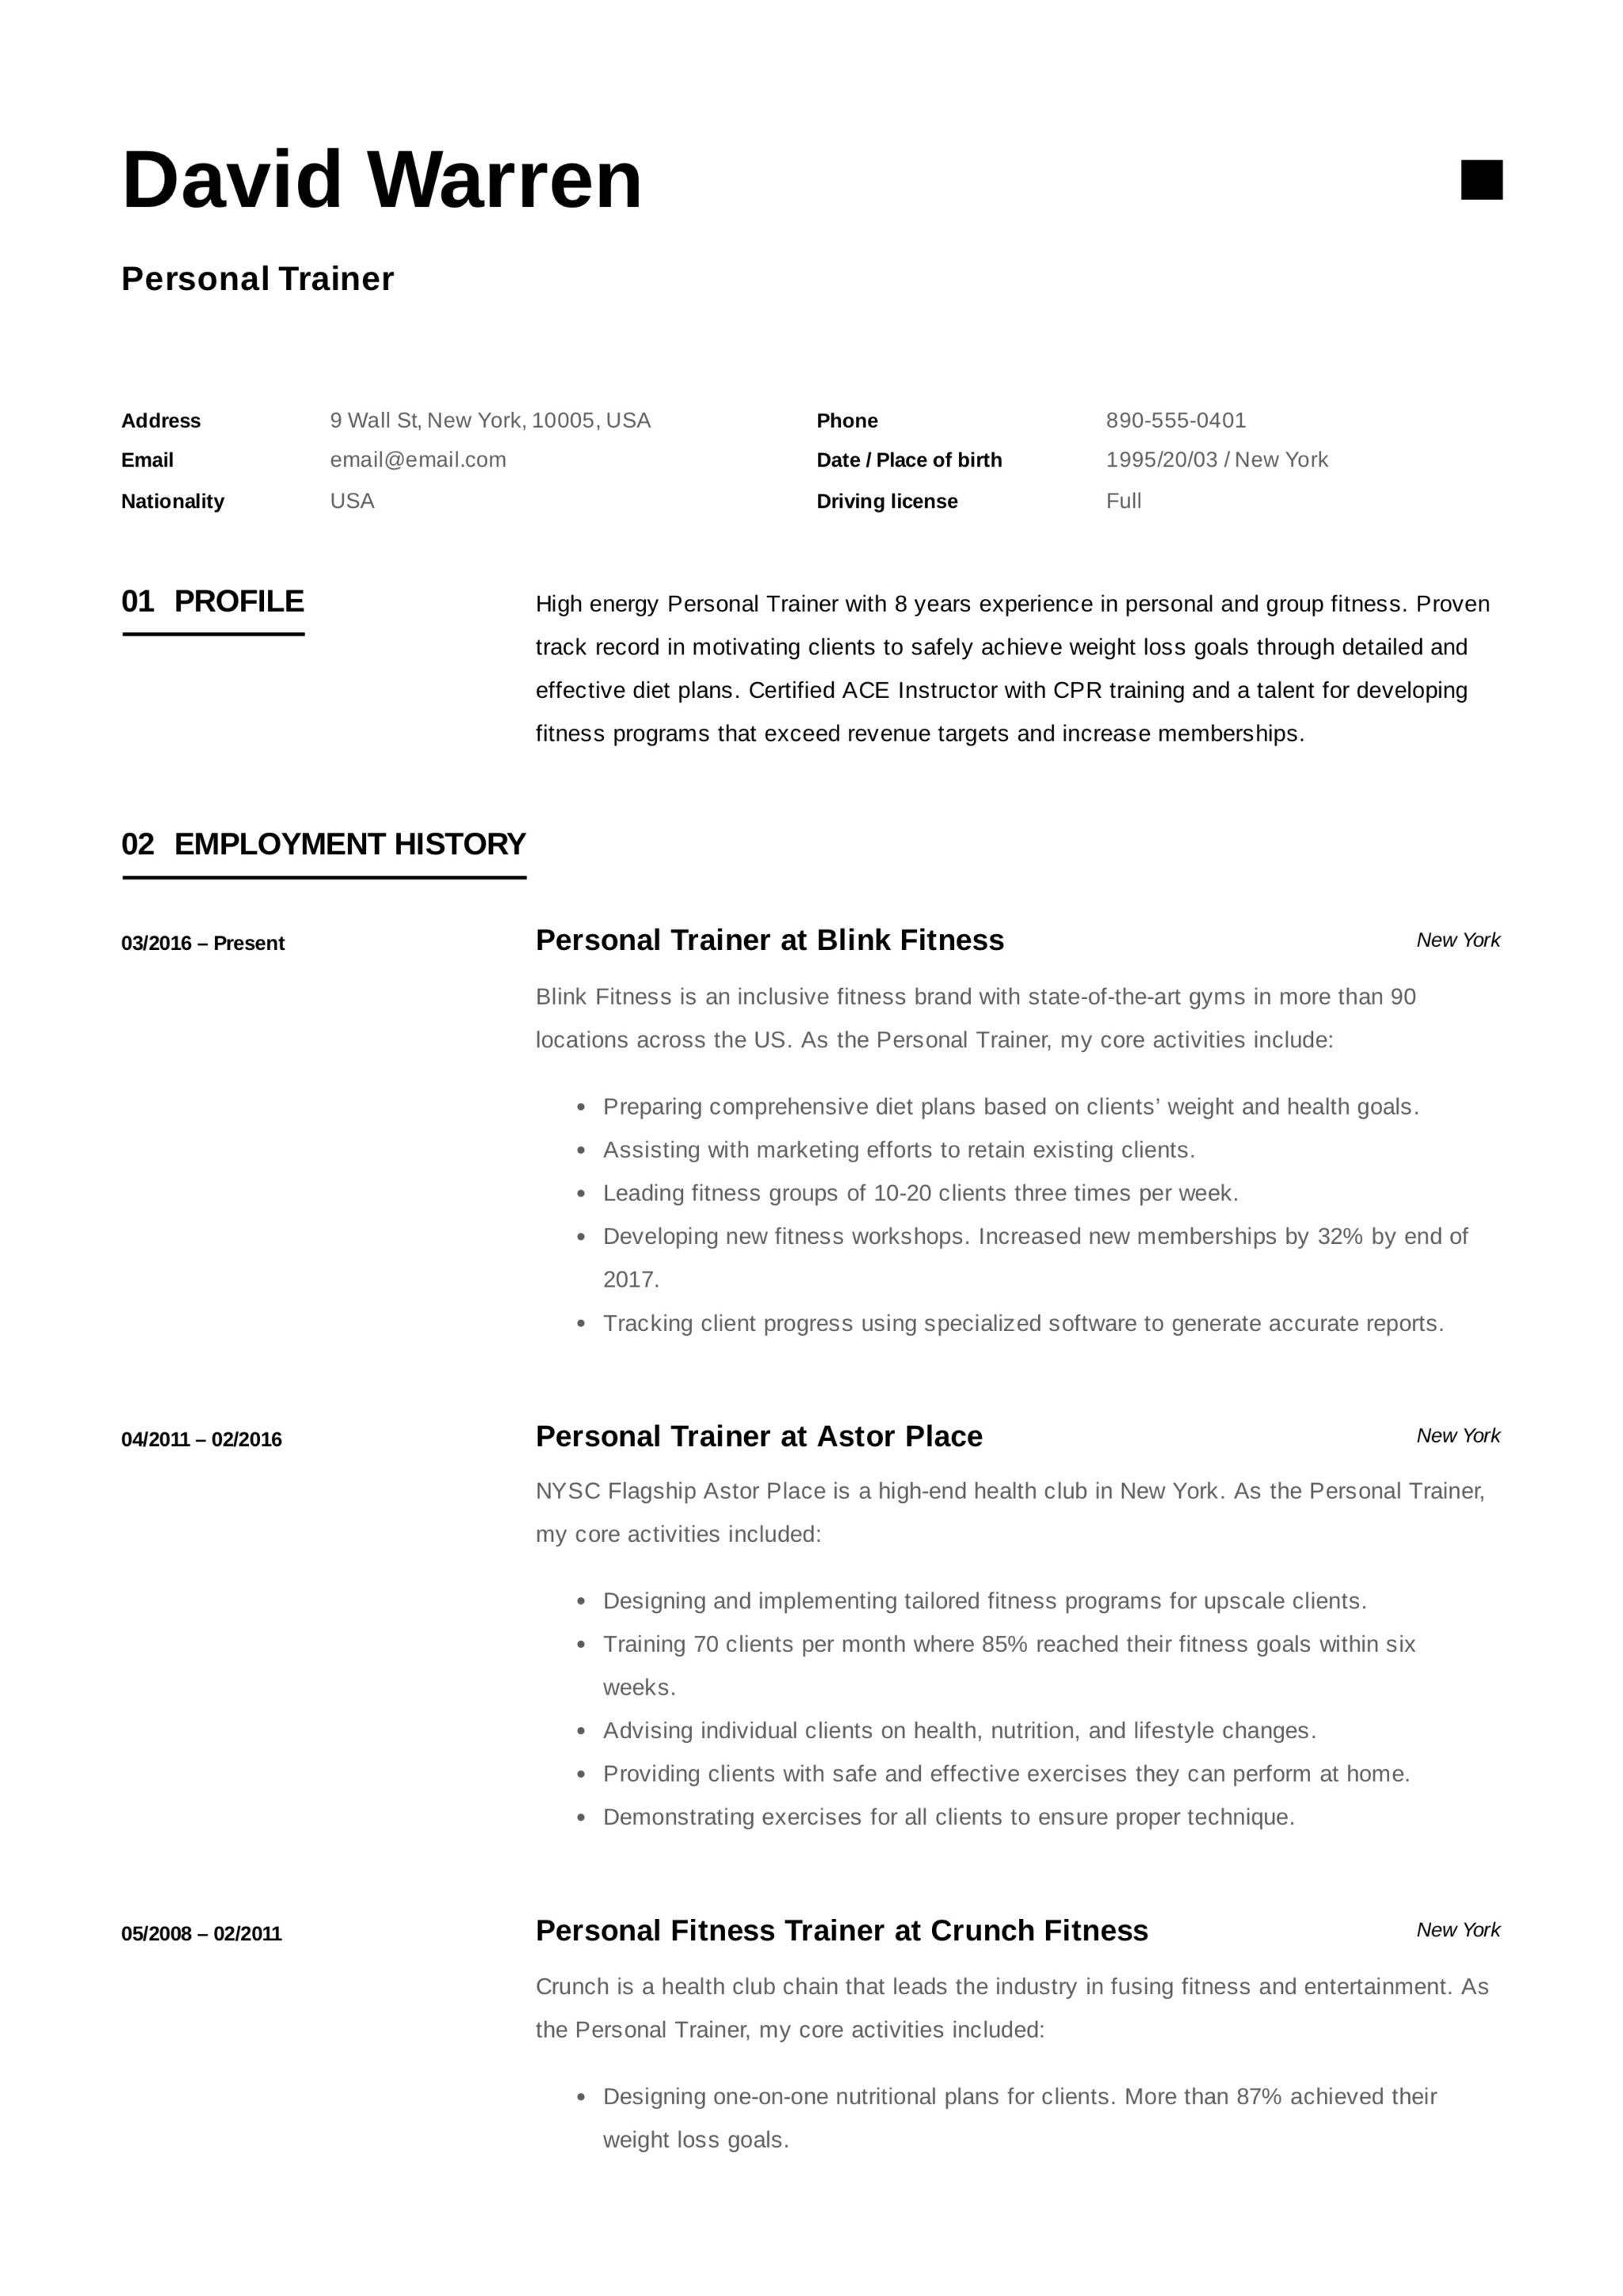 12 Personal Trainer Resume Samples 2018 Free